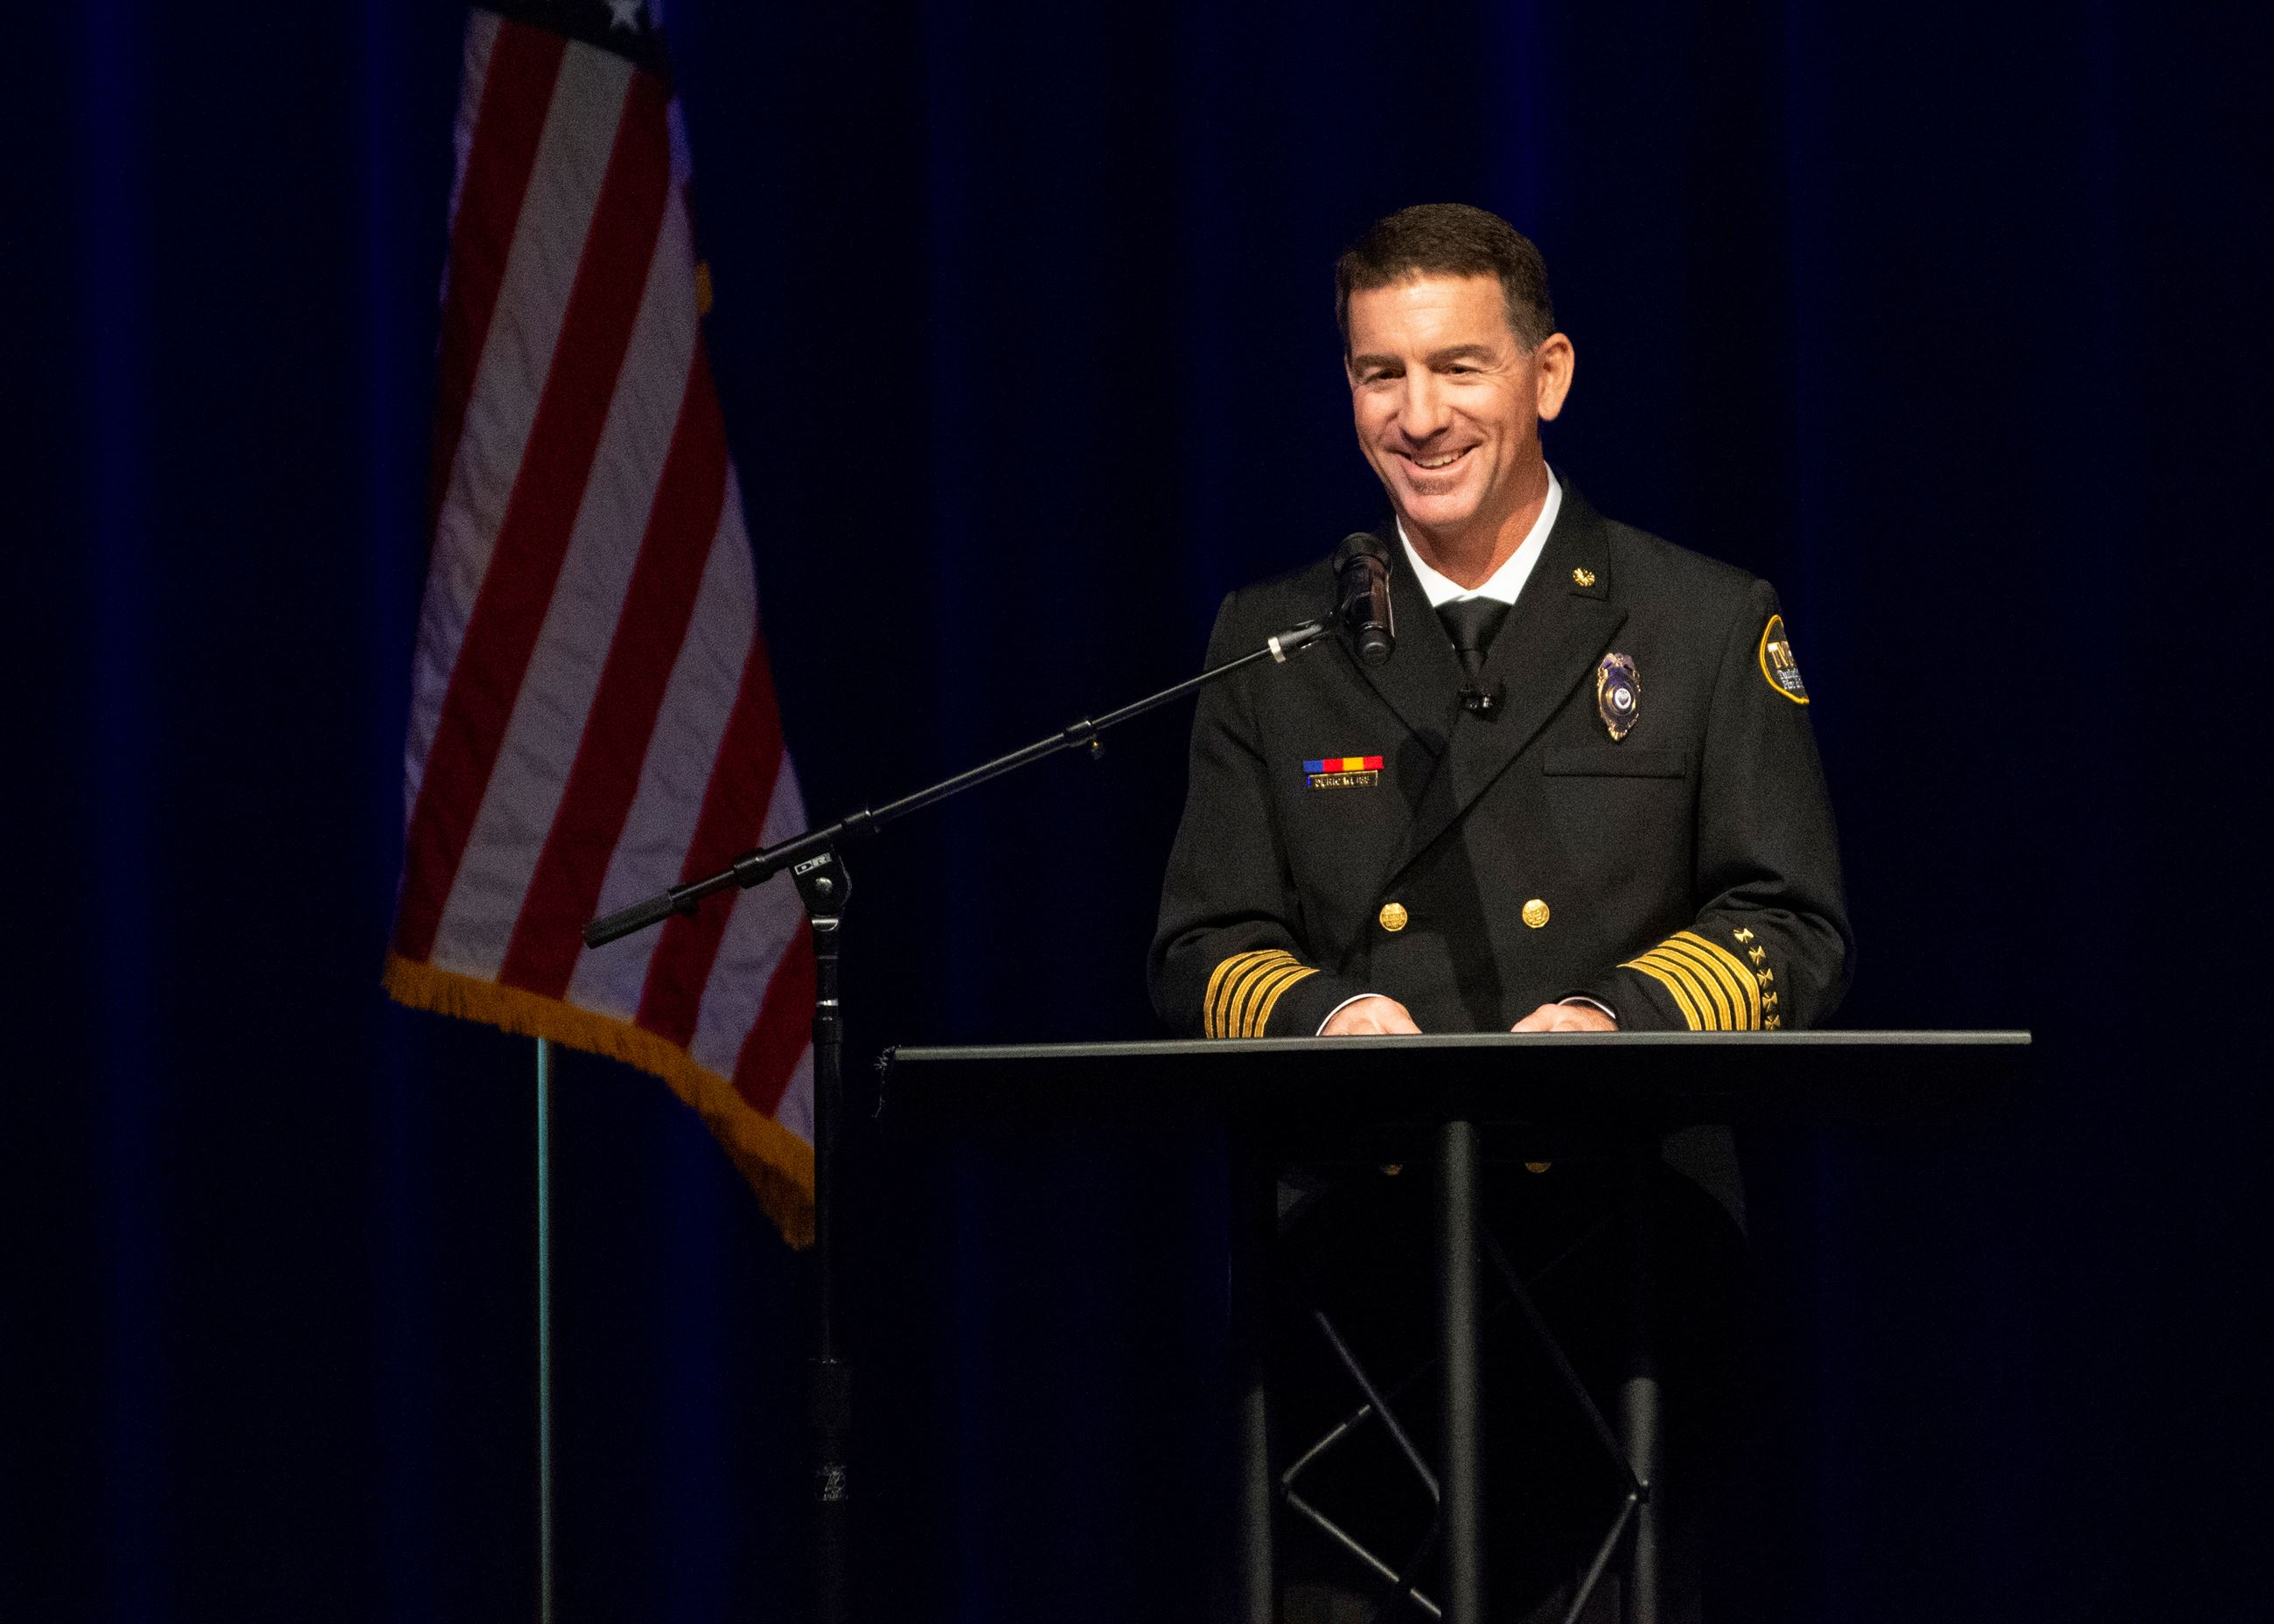 Chief Deric Weiss Speaks at Transfer of Command Ceremony